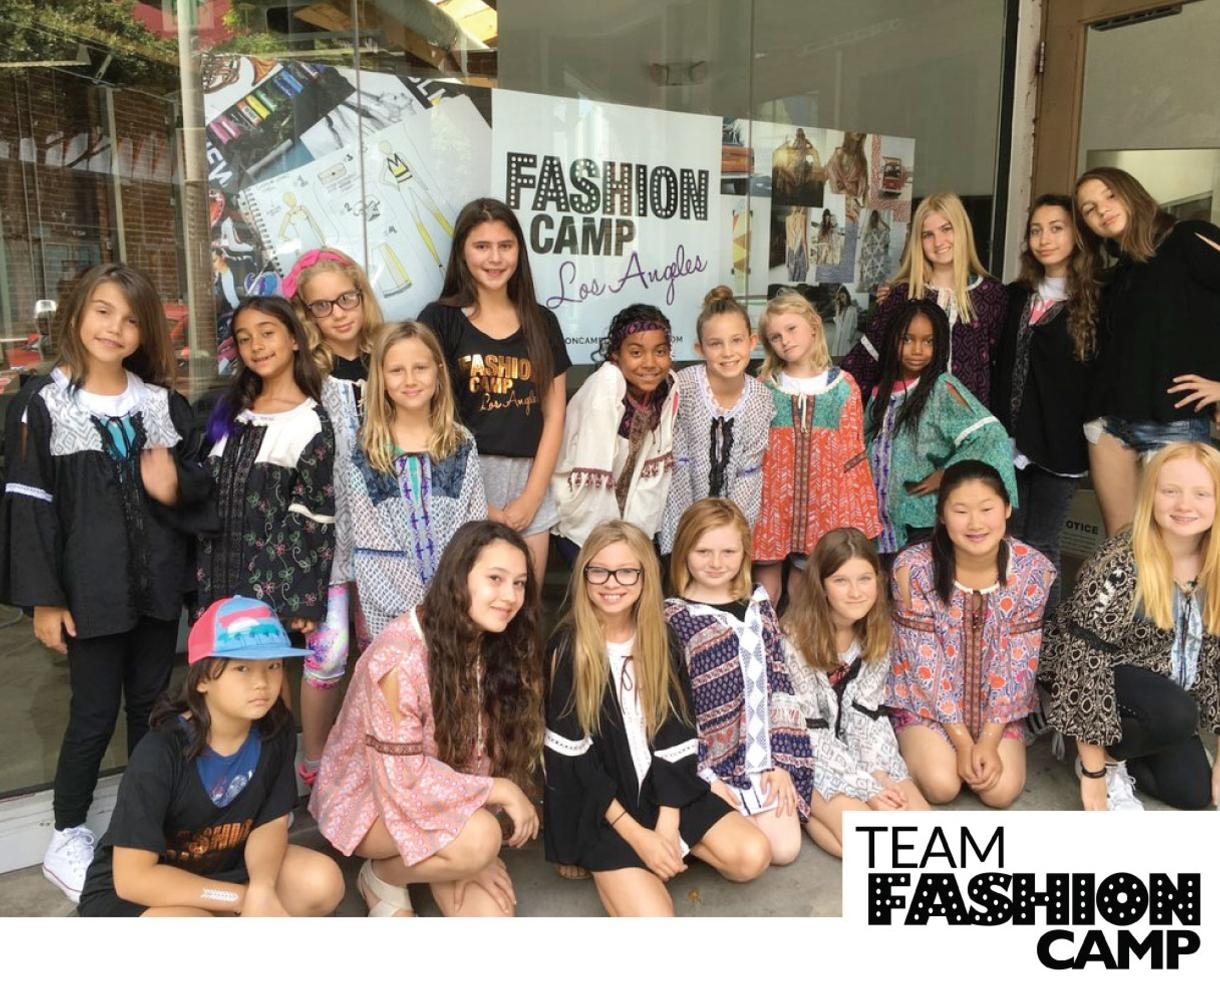 650 For Fashion Design Camp For Ages 8 12 In Santa Monica